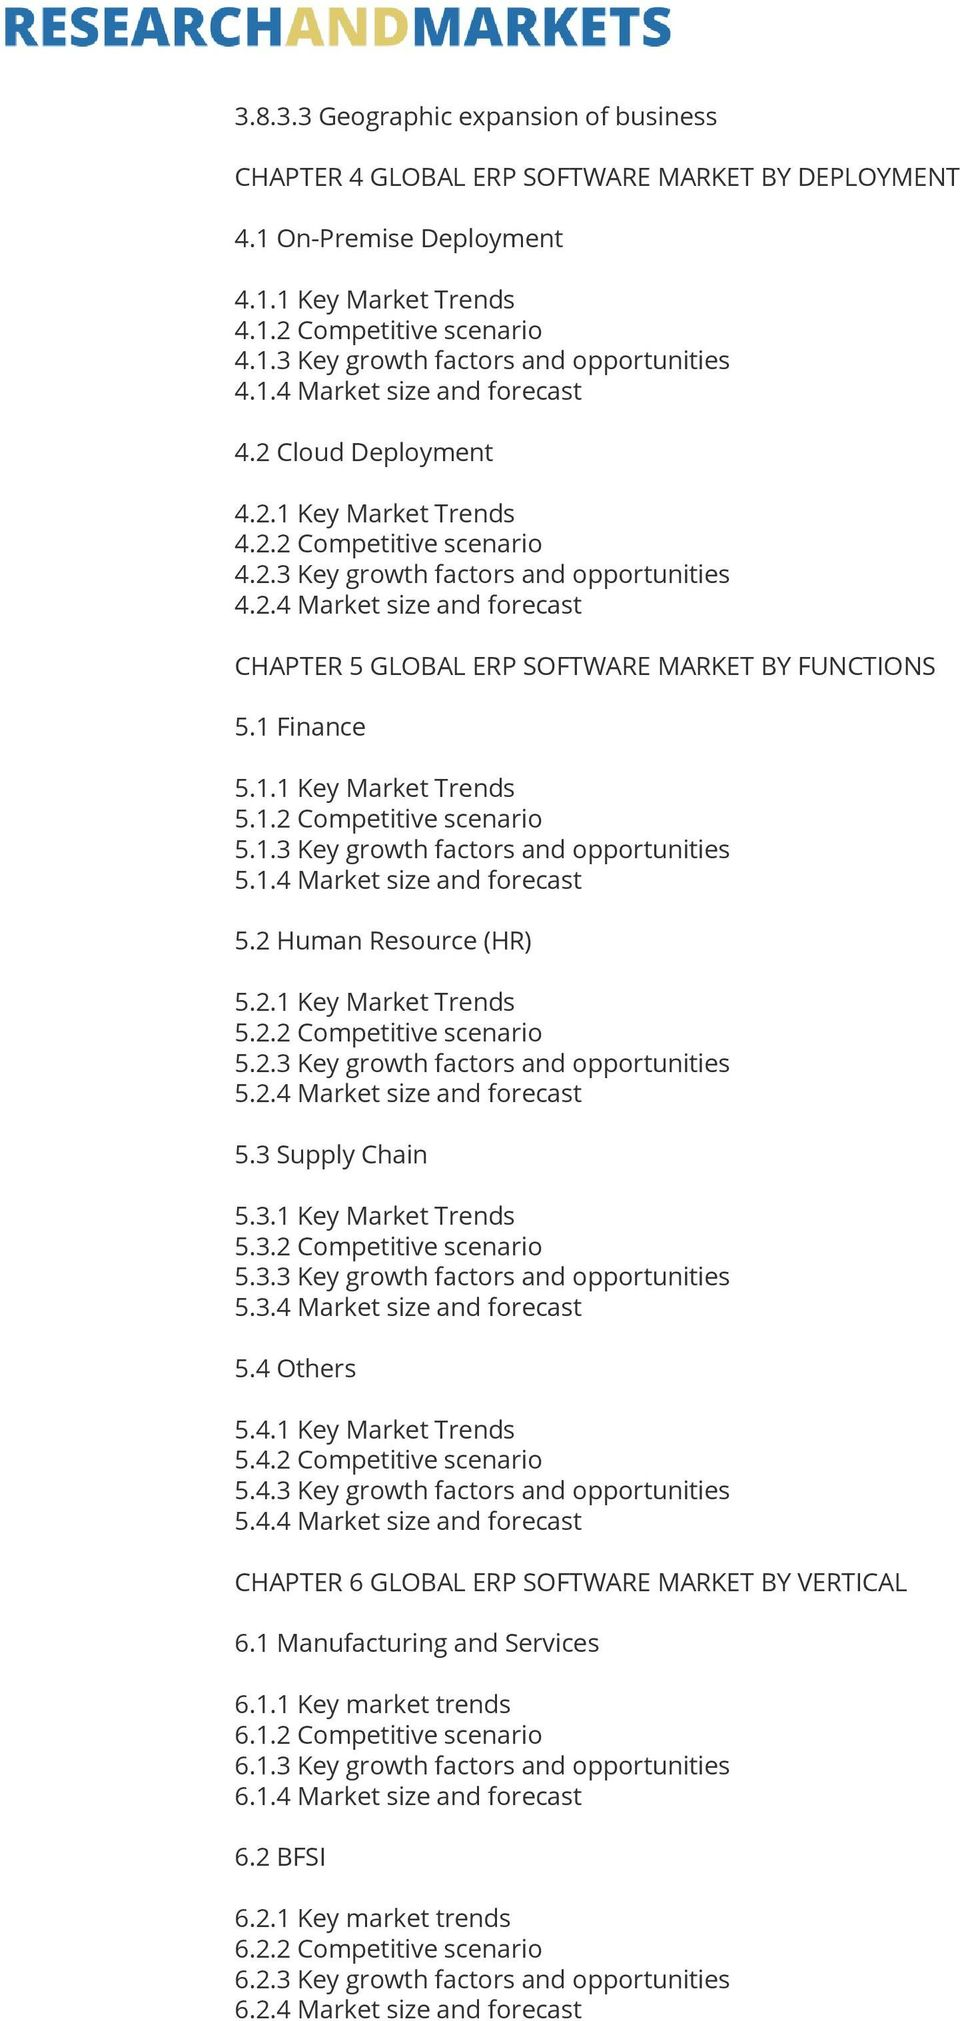 1 Finance 5.1.1 Key Market Trends 5.1.2 Competitive scenario 5.1.3 Key growth factors and opportunities 5.1.4 Market size and forecast 5.2 Human Resource (HR) 5.2.1 Key Market Trends 5.2.2 Competitive scenario 5.2.3 Key growth factors and opportunities 5.2.4 Market size and forecast 5.3 Supply Chain 5.